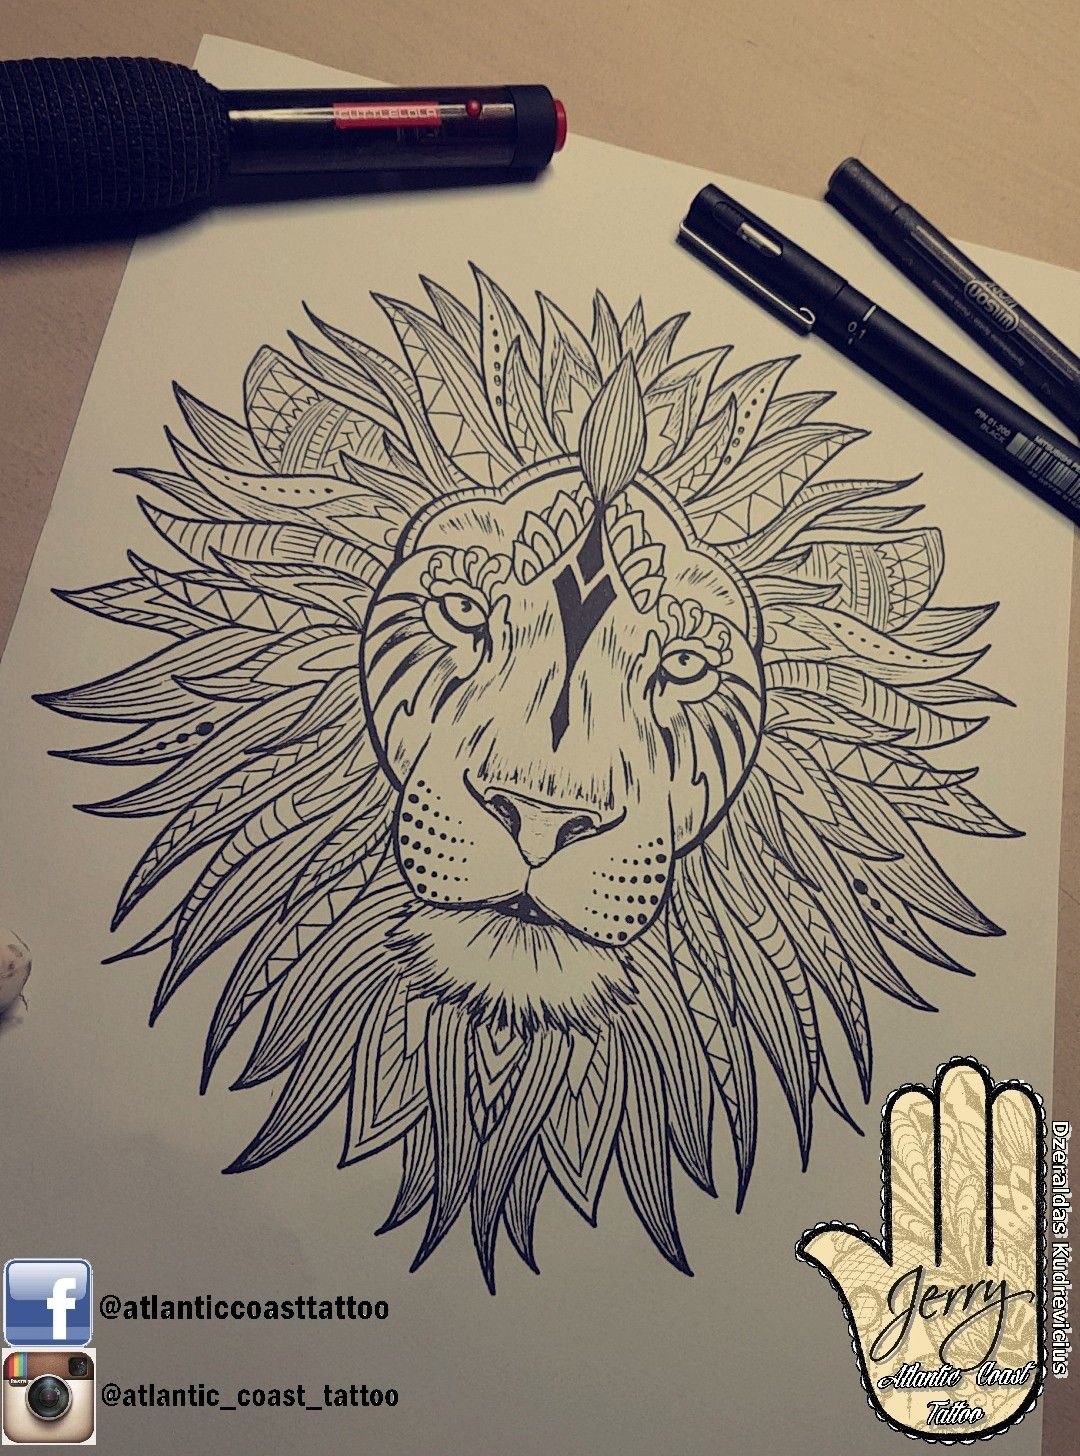 Beautiful Lion Tattoo Idea Design By Dzeraldas Jerry Kudrevicius From Atlantic Coast Tattoo Mandala Ornamental S Mandala Lion Tattoo Lion Mandala Lion Tattoo